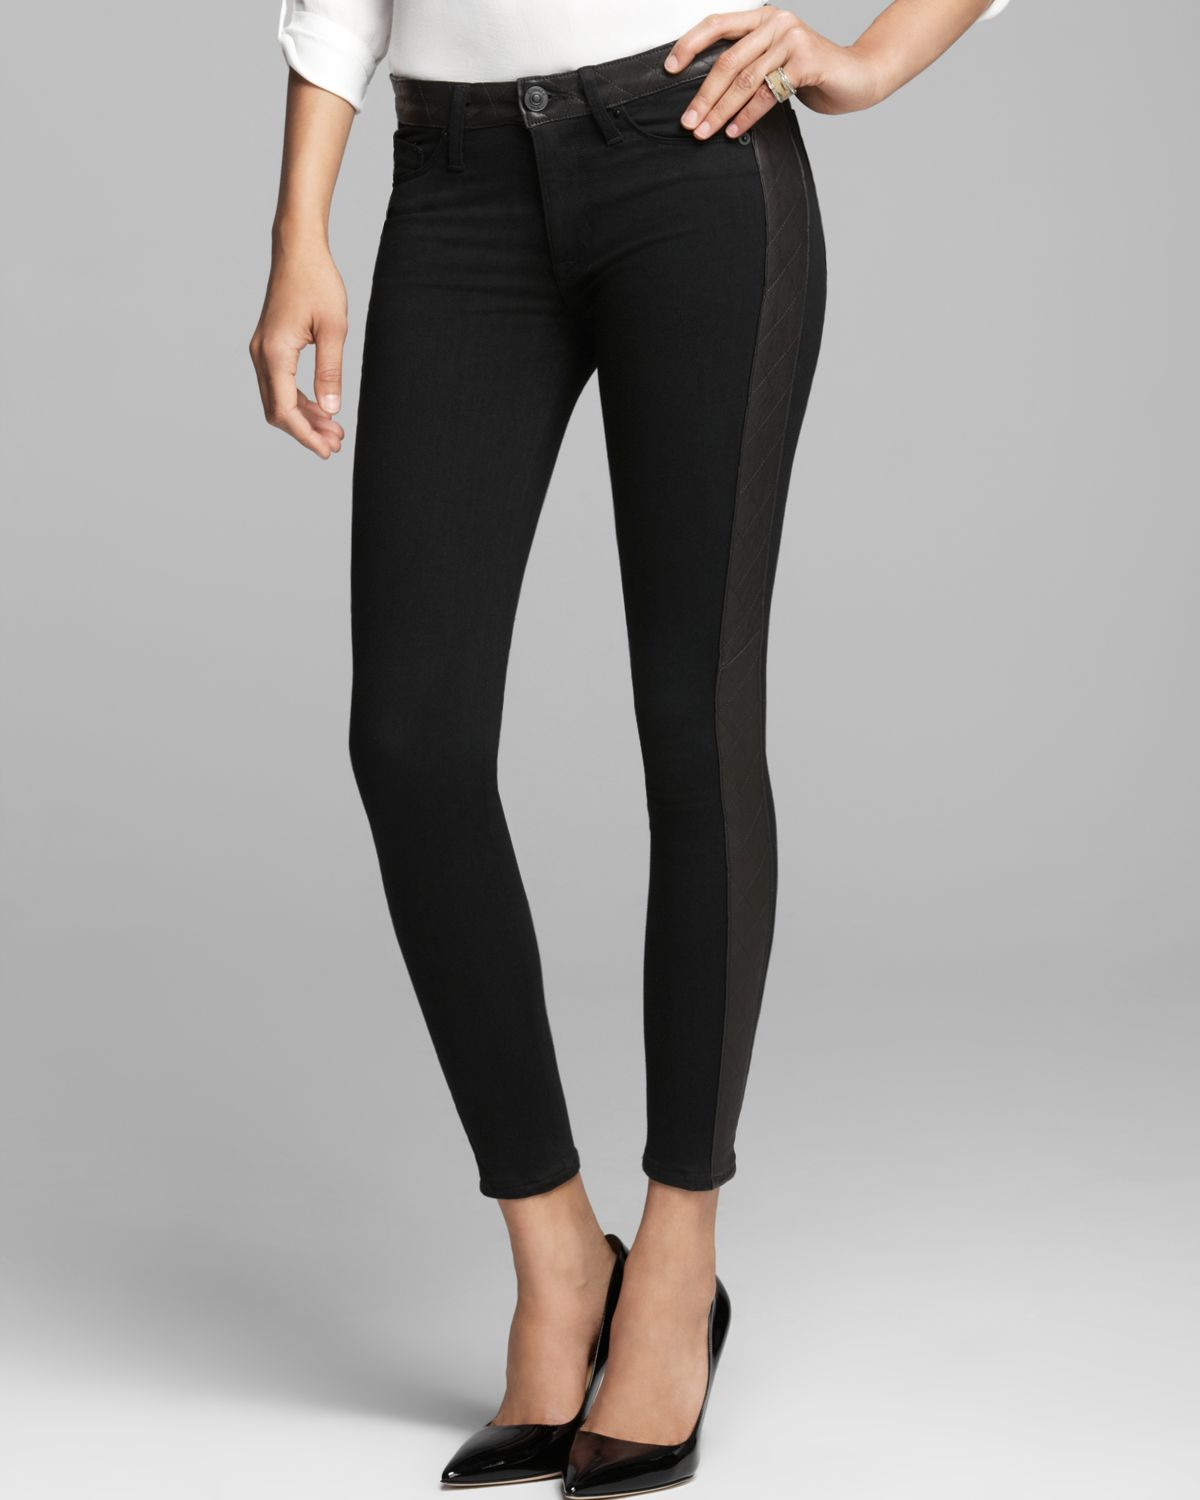 Jeans Leeloo Quilted Leather Stripe Bloomingdales .